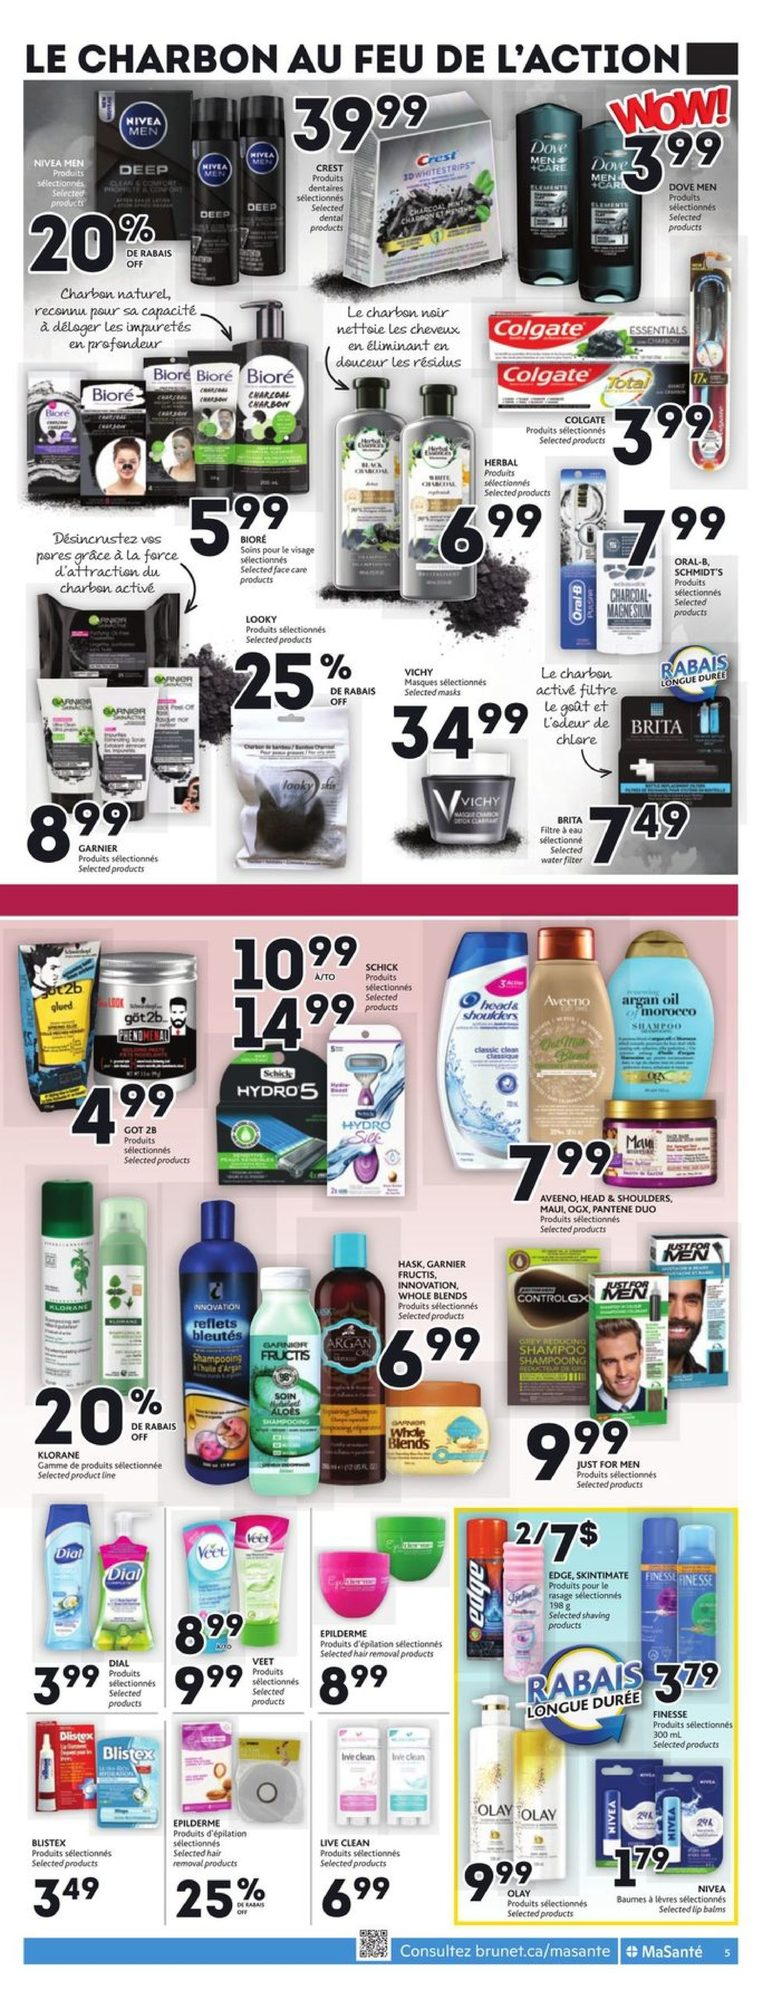 Brunet - Weekly Flyer Specials - Page 5